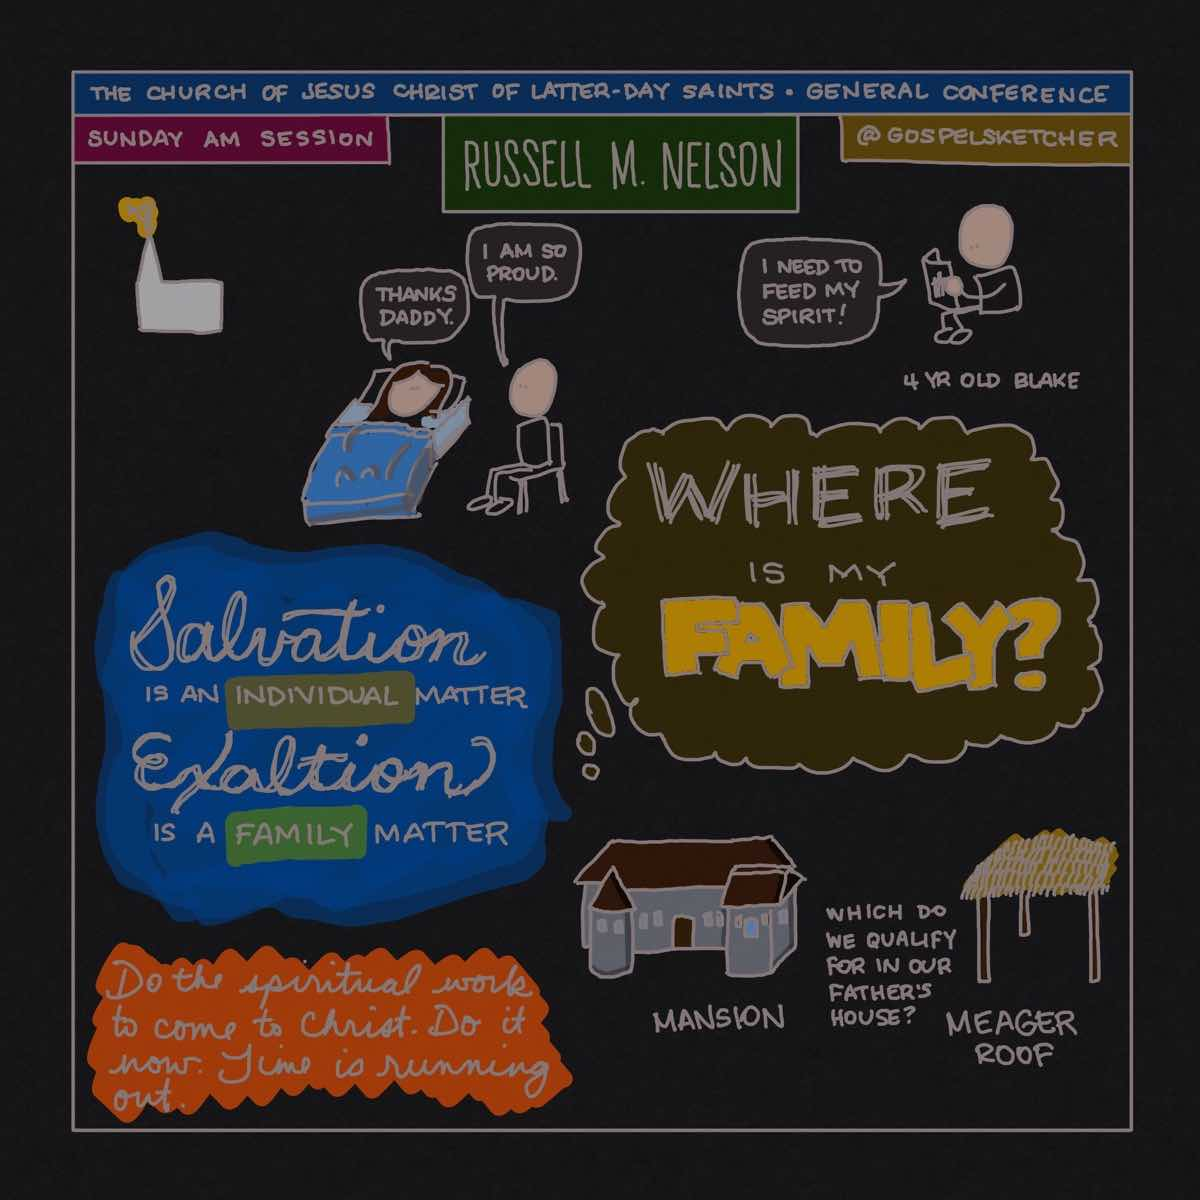 Russell M. Nelson sketchnotes